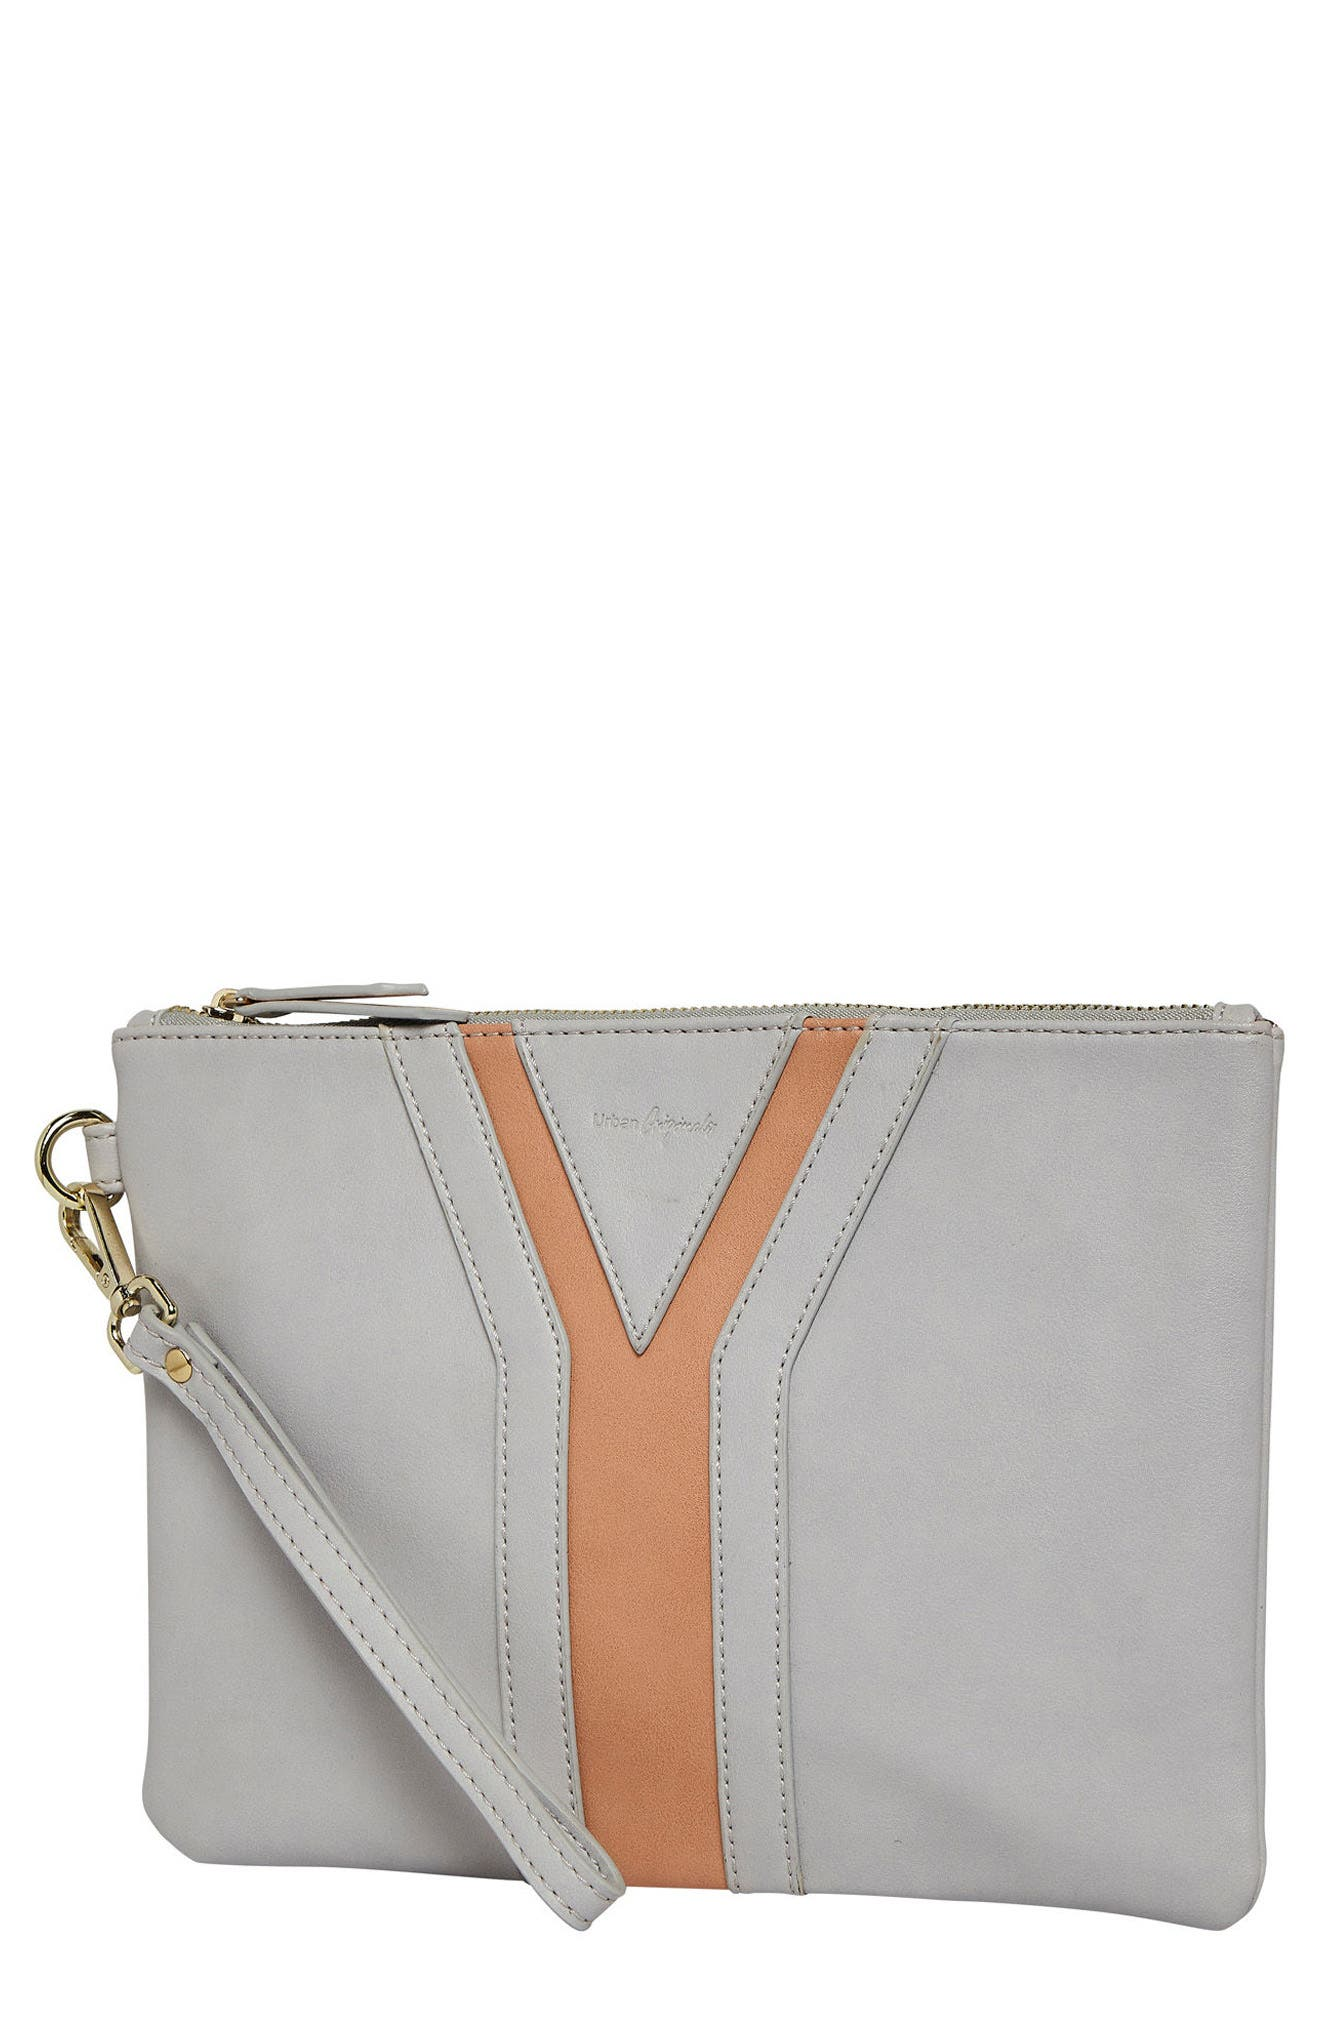 All She Wants Vegan Leather Clutch,                             Main thumbnail 3, color,